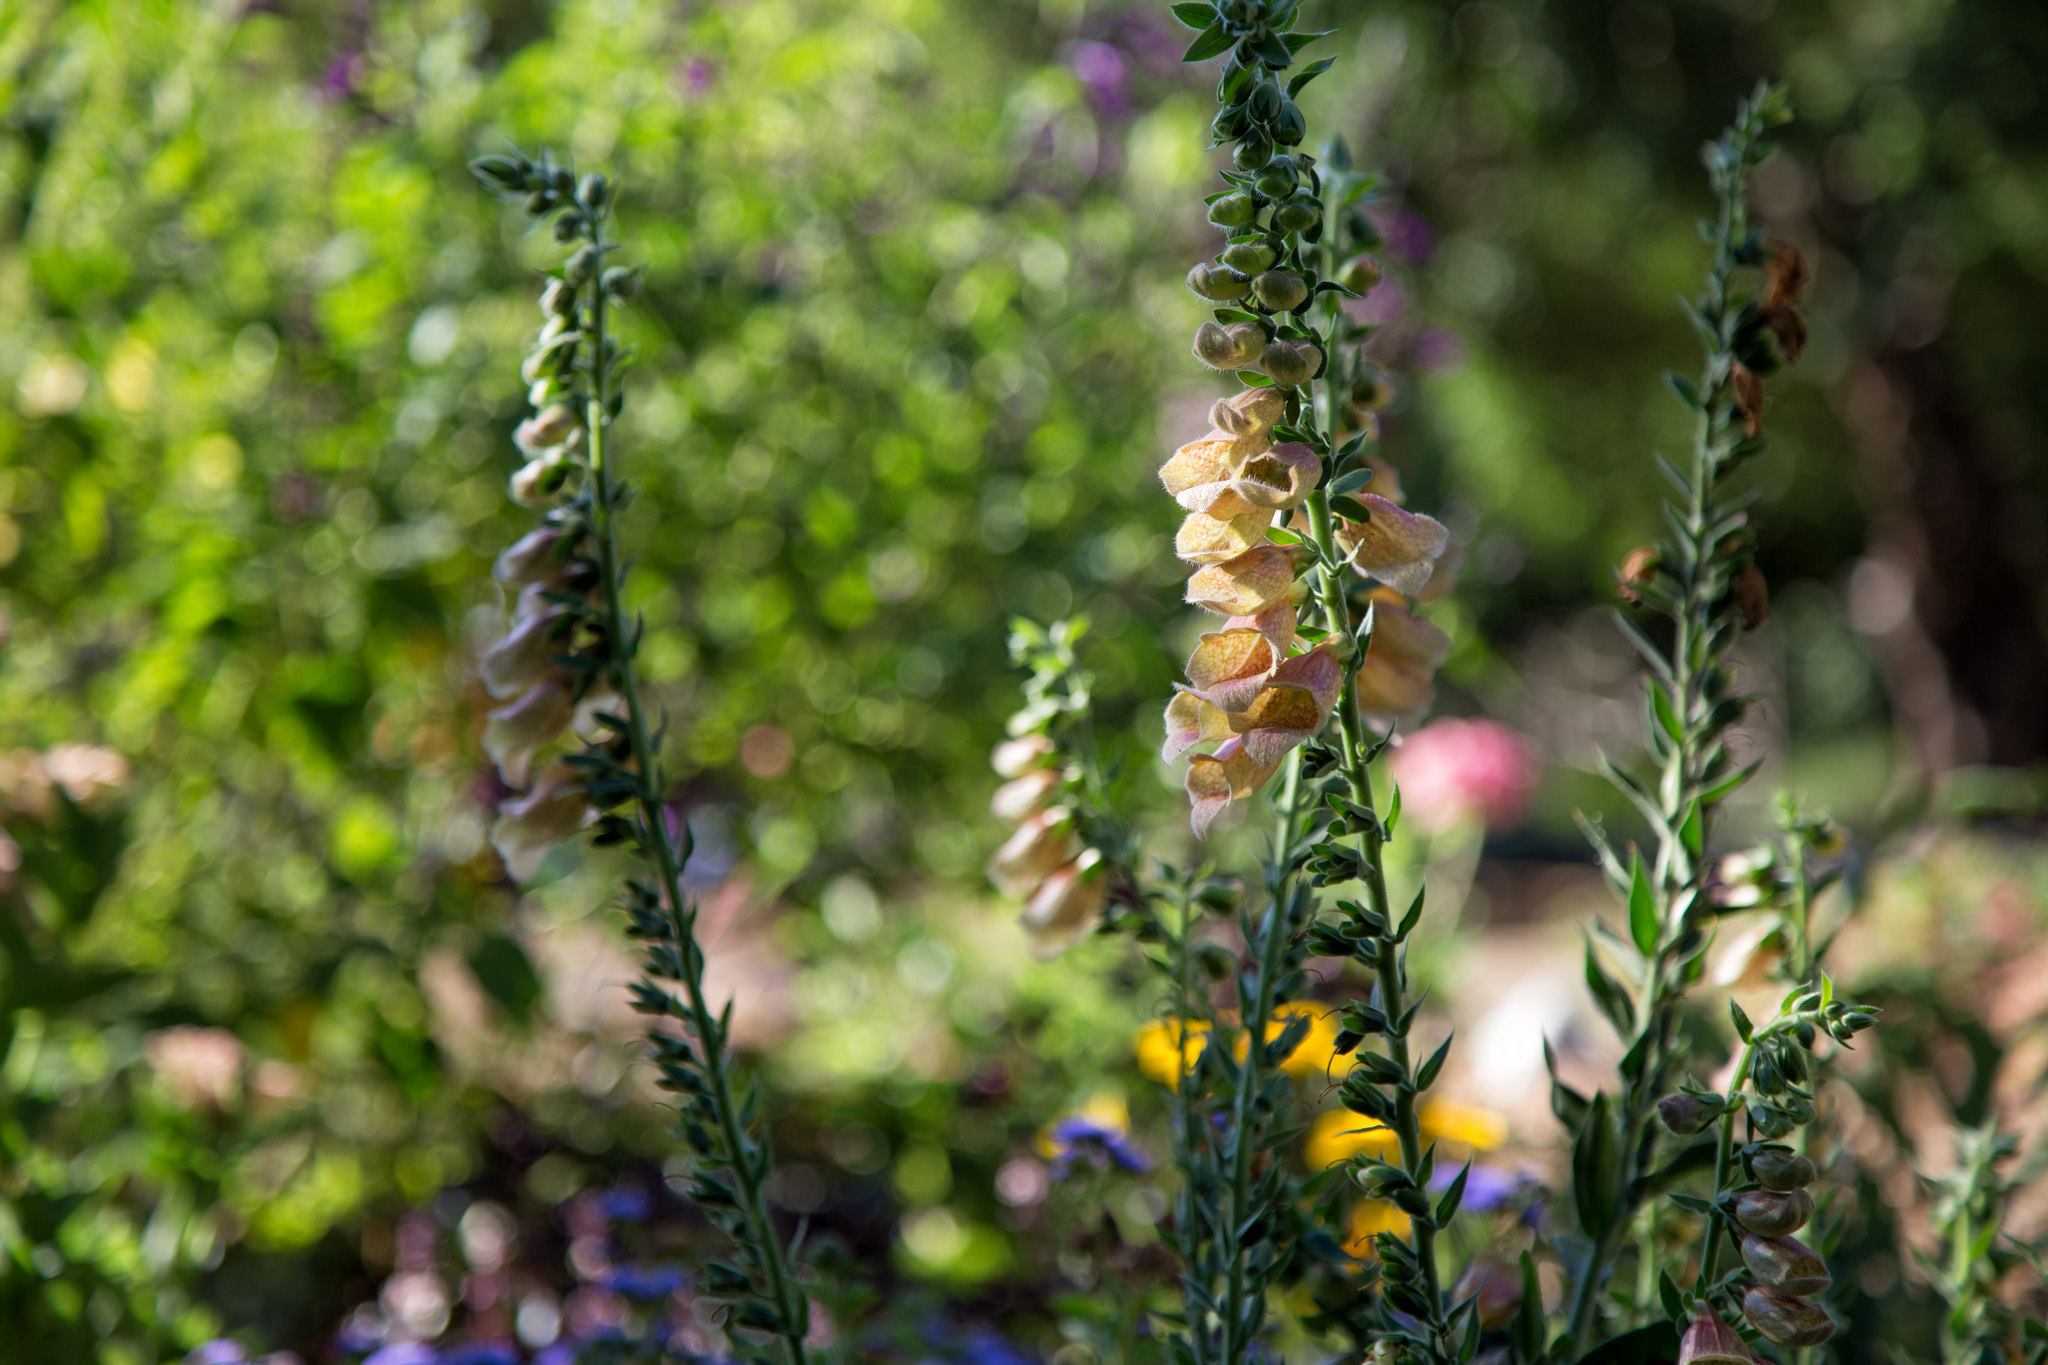 Foxgloves, aka witches' thimbles, fairy's glove, dead man's bells - A favorite of the fae, they will forever be one of my favorite flowers too along with Lily of the Valley.